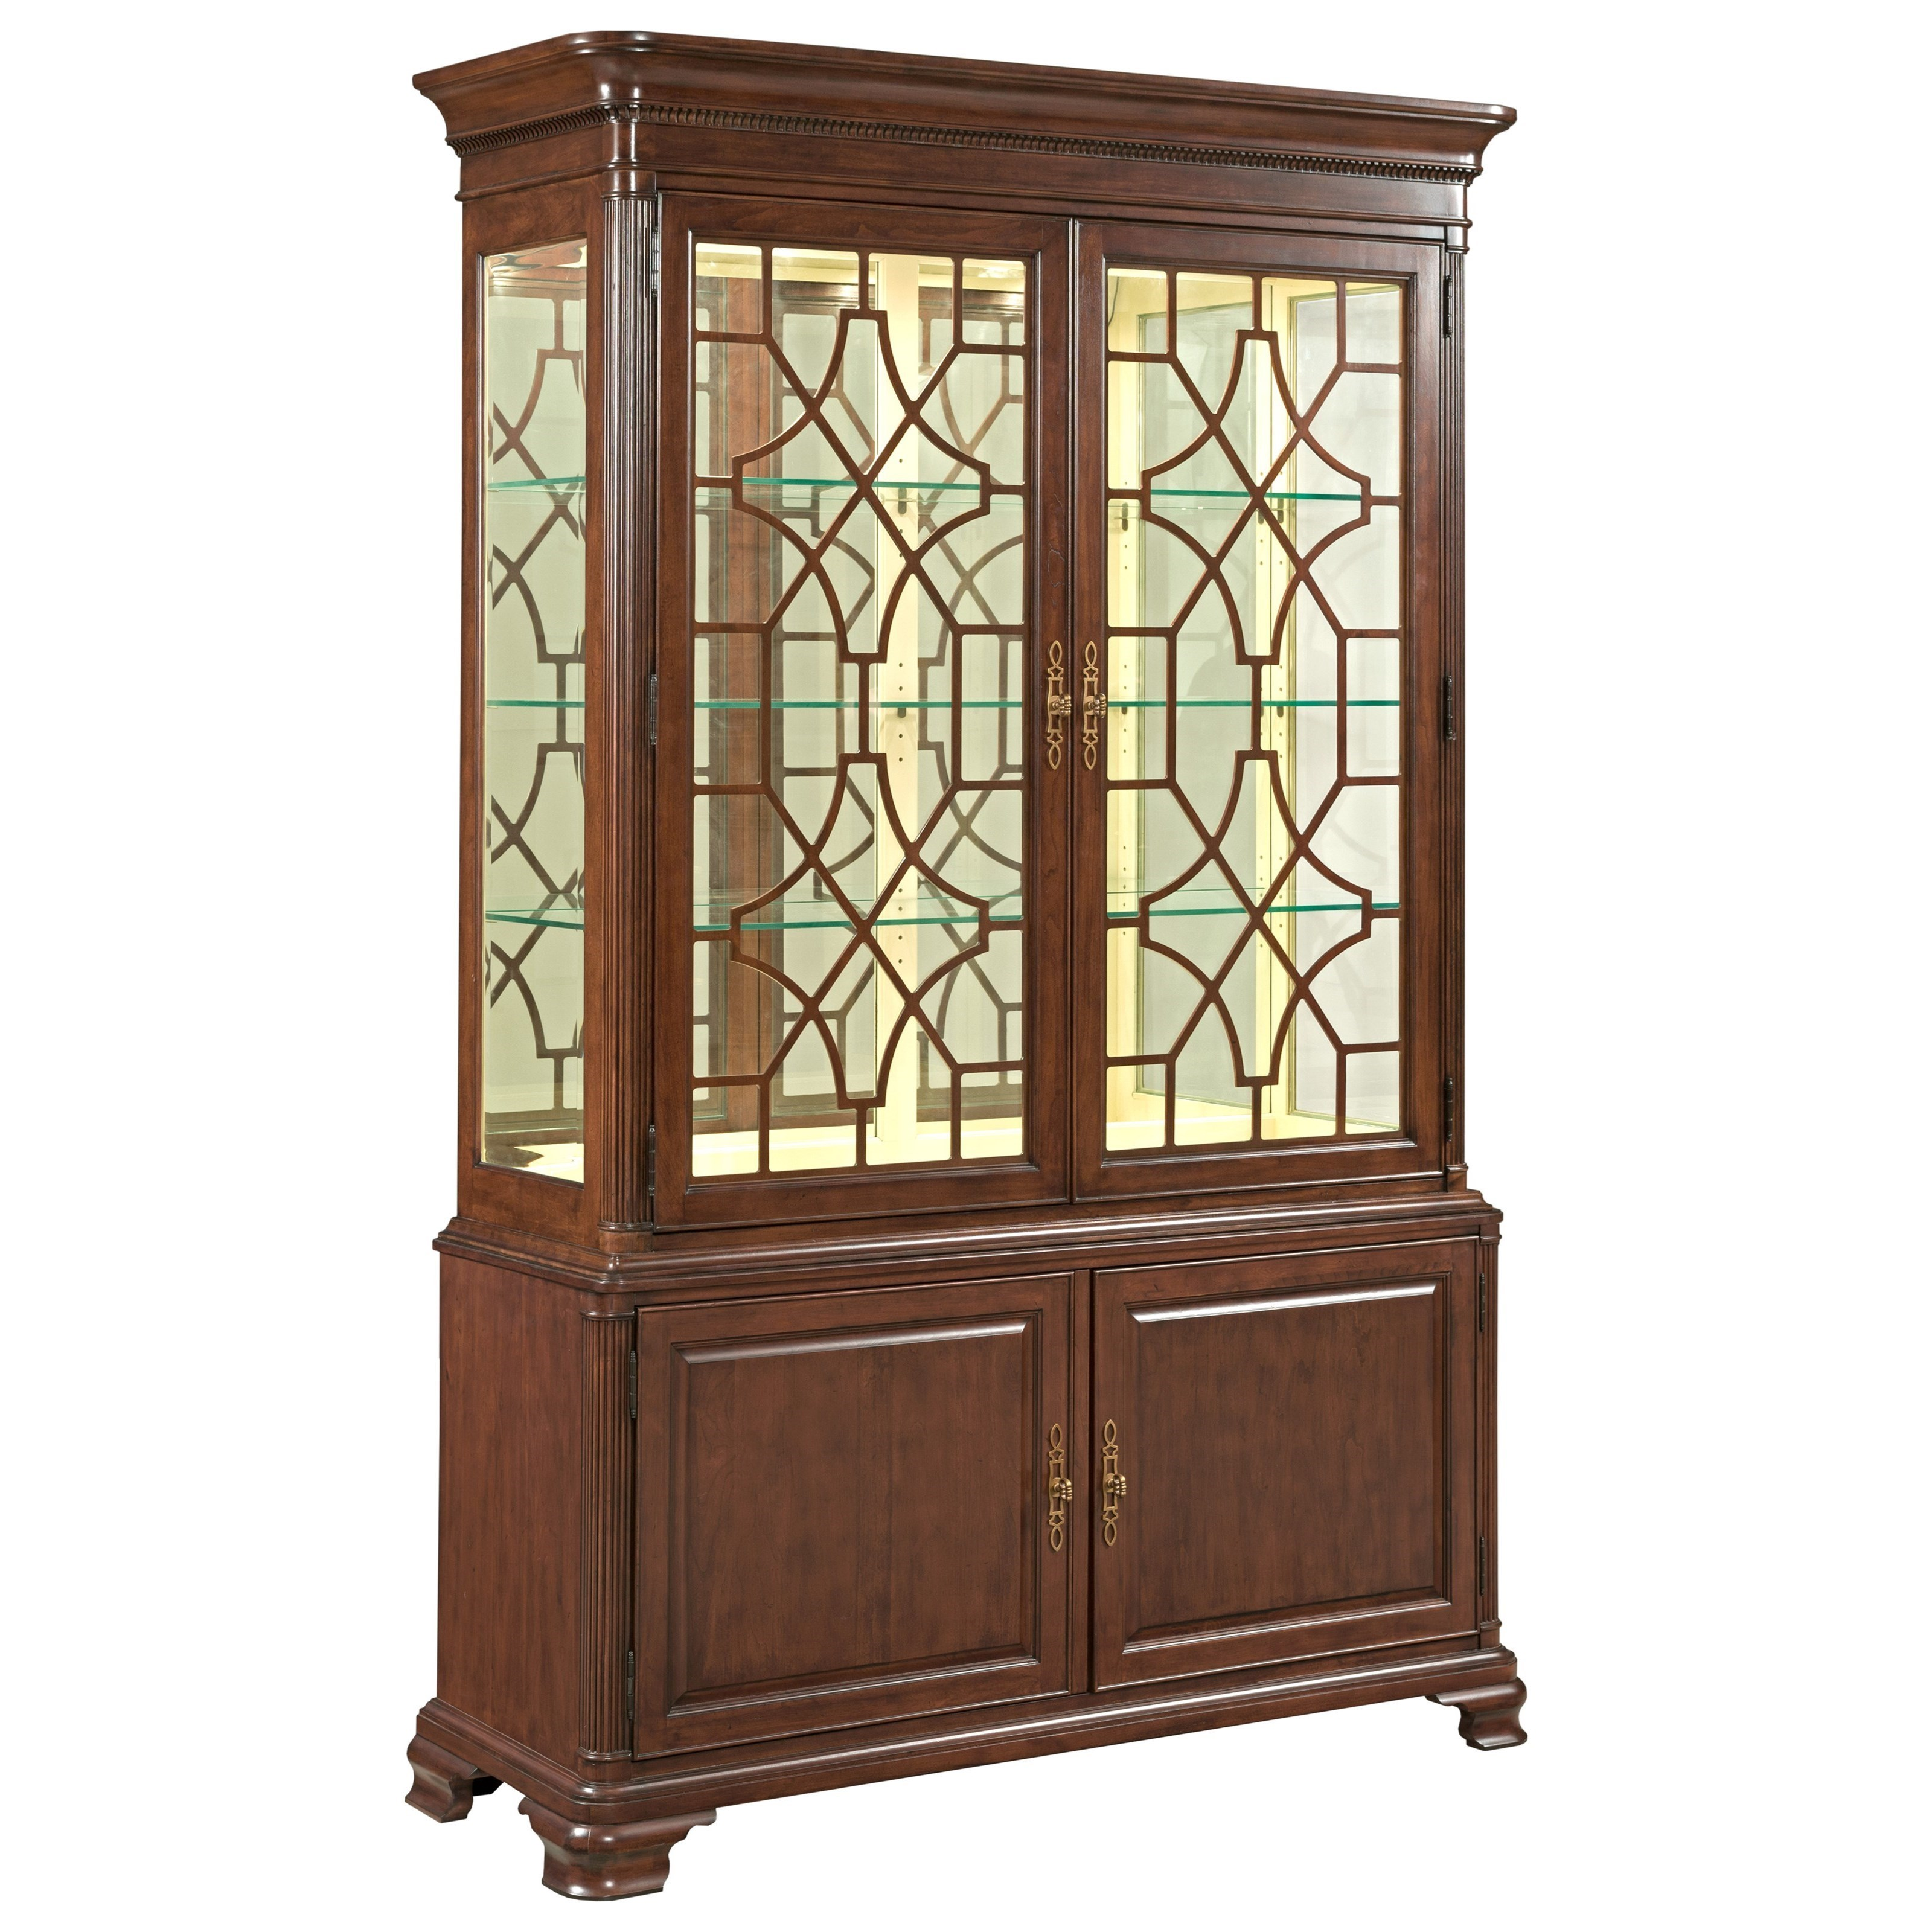 Ordinaire Kincaid Furniture Hadleigh Traditional China Cabinet With Adjustable  Shelving And Touch Dimmer Light